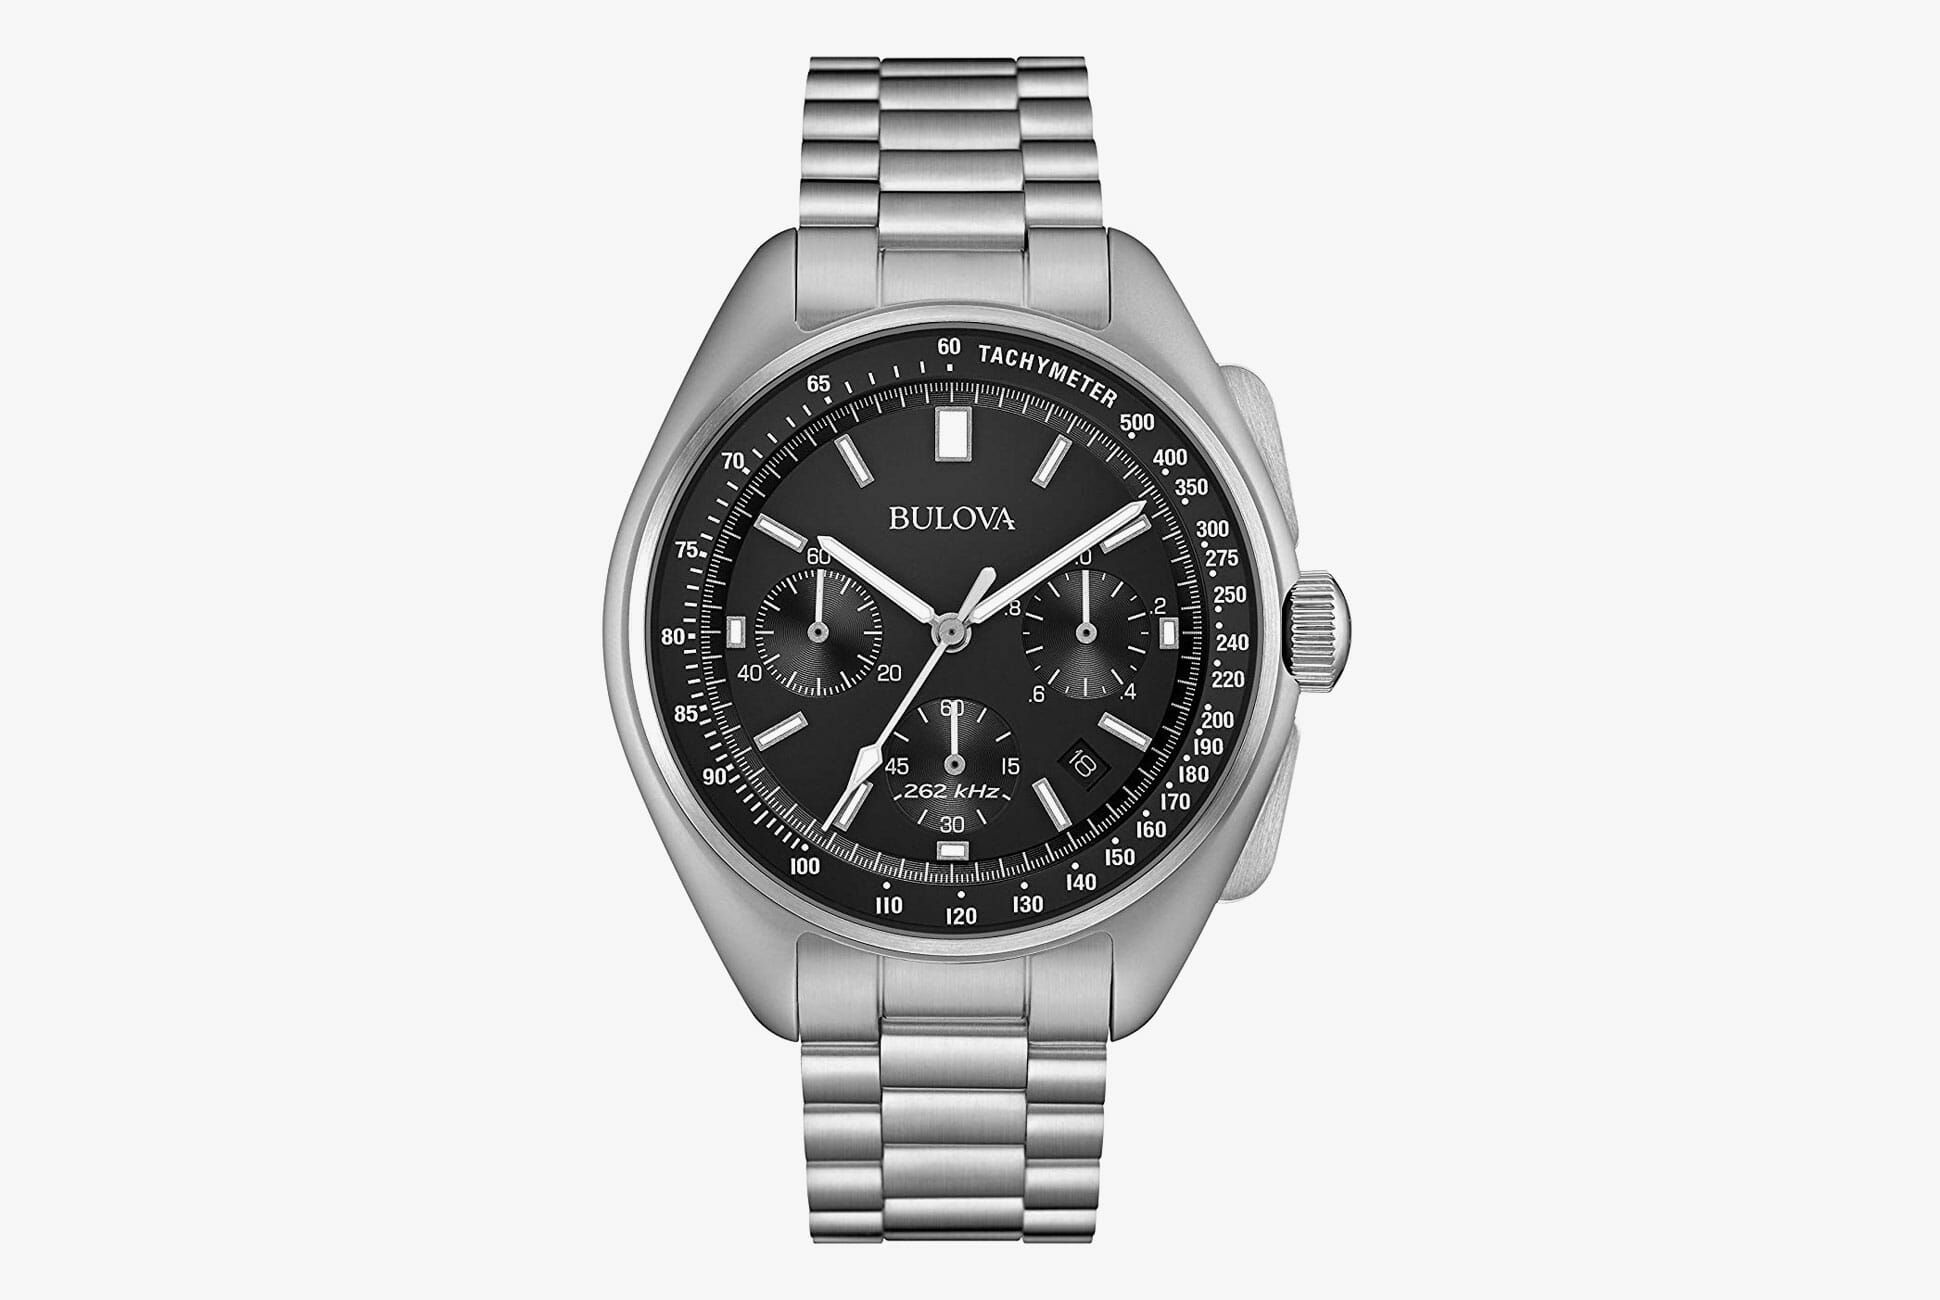 Today's Best Deals: Save on Bulova's Moon Watch, Doc Martens